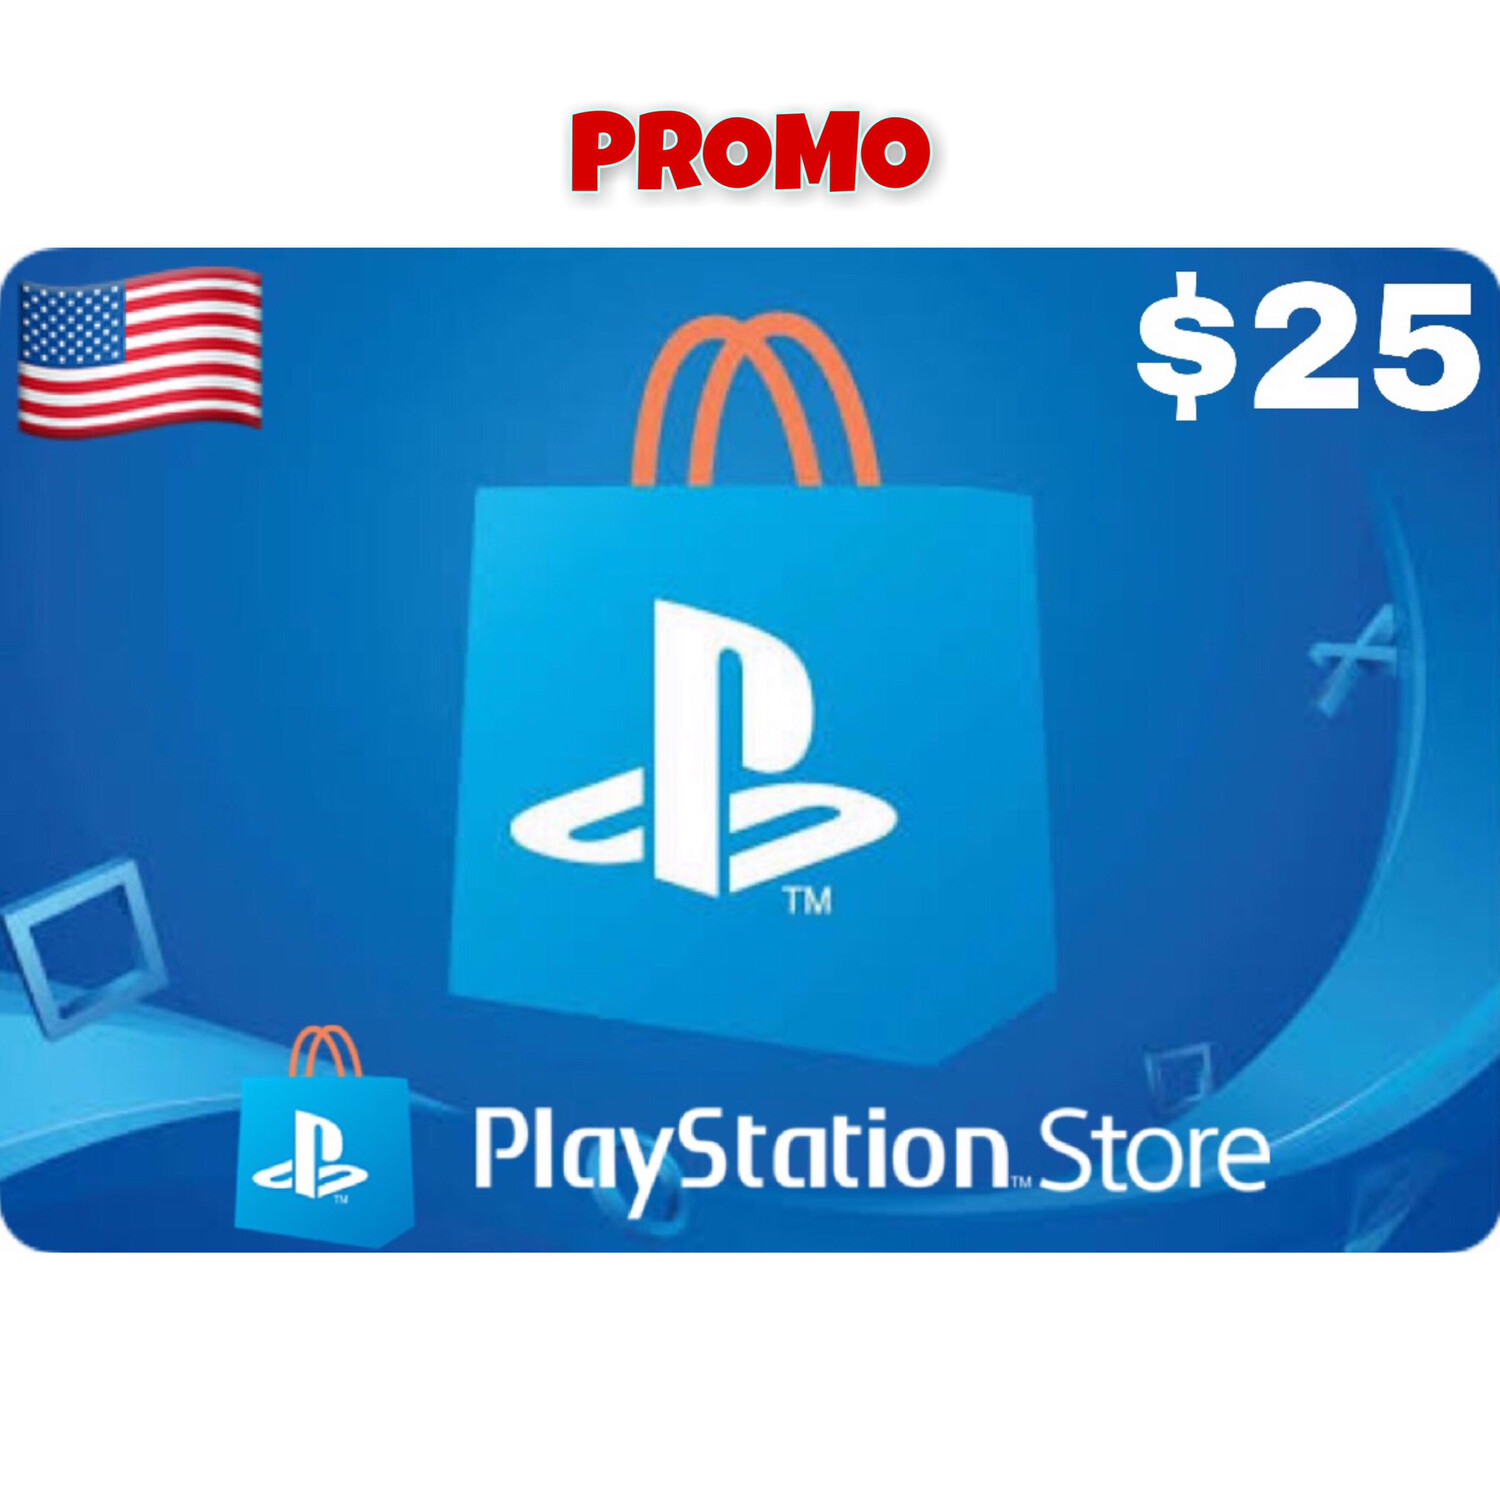 Promo Playstation (PSN Card) USA $25 (Web Order Only)